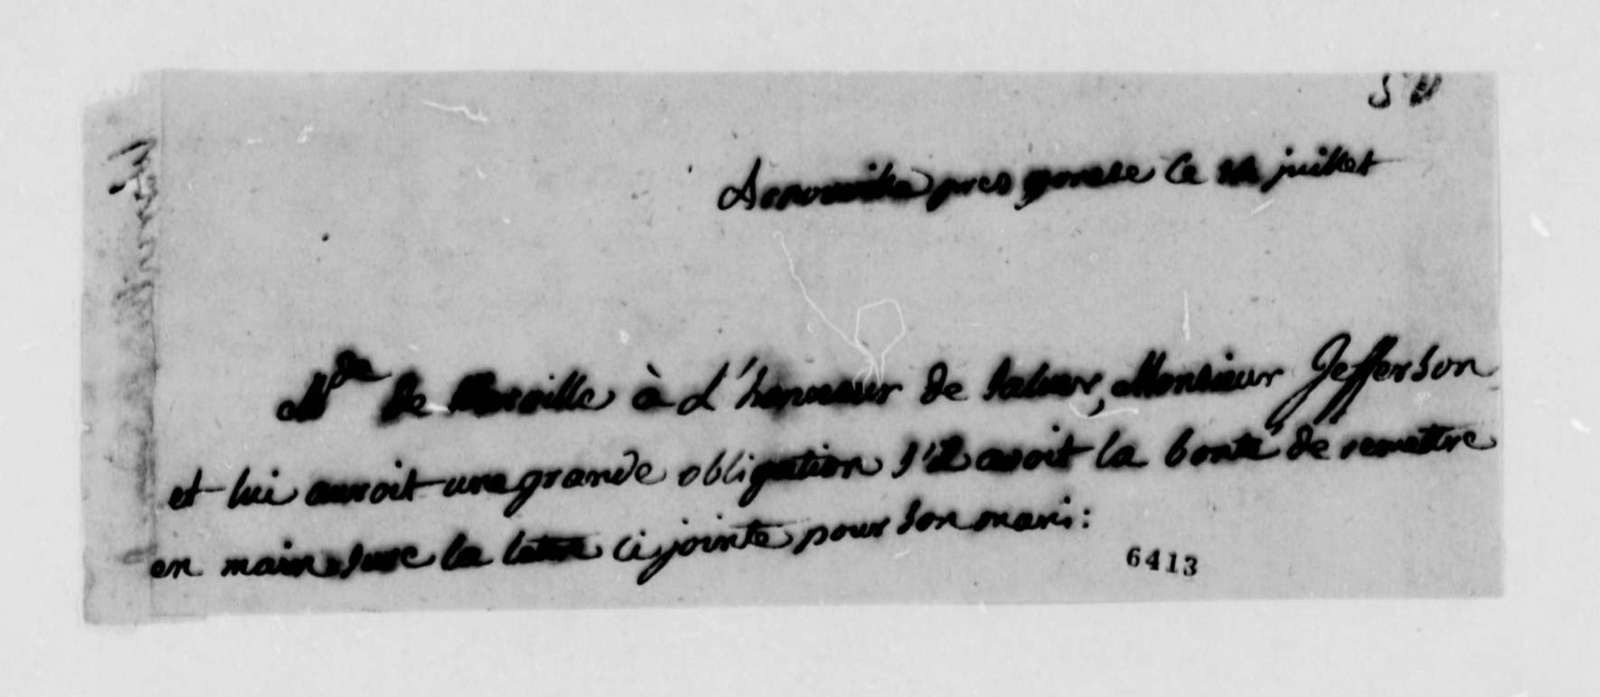 Madame Brissot de Warville to Thomas Jefferson, July 14, 1789, in French